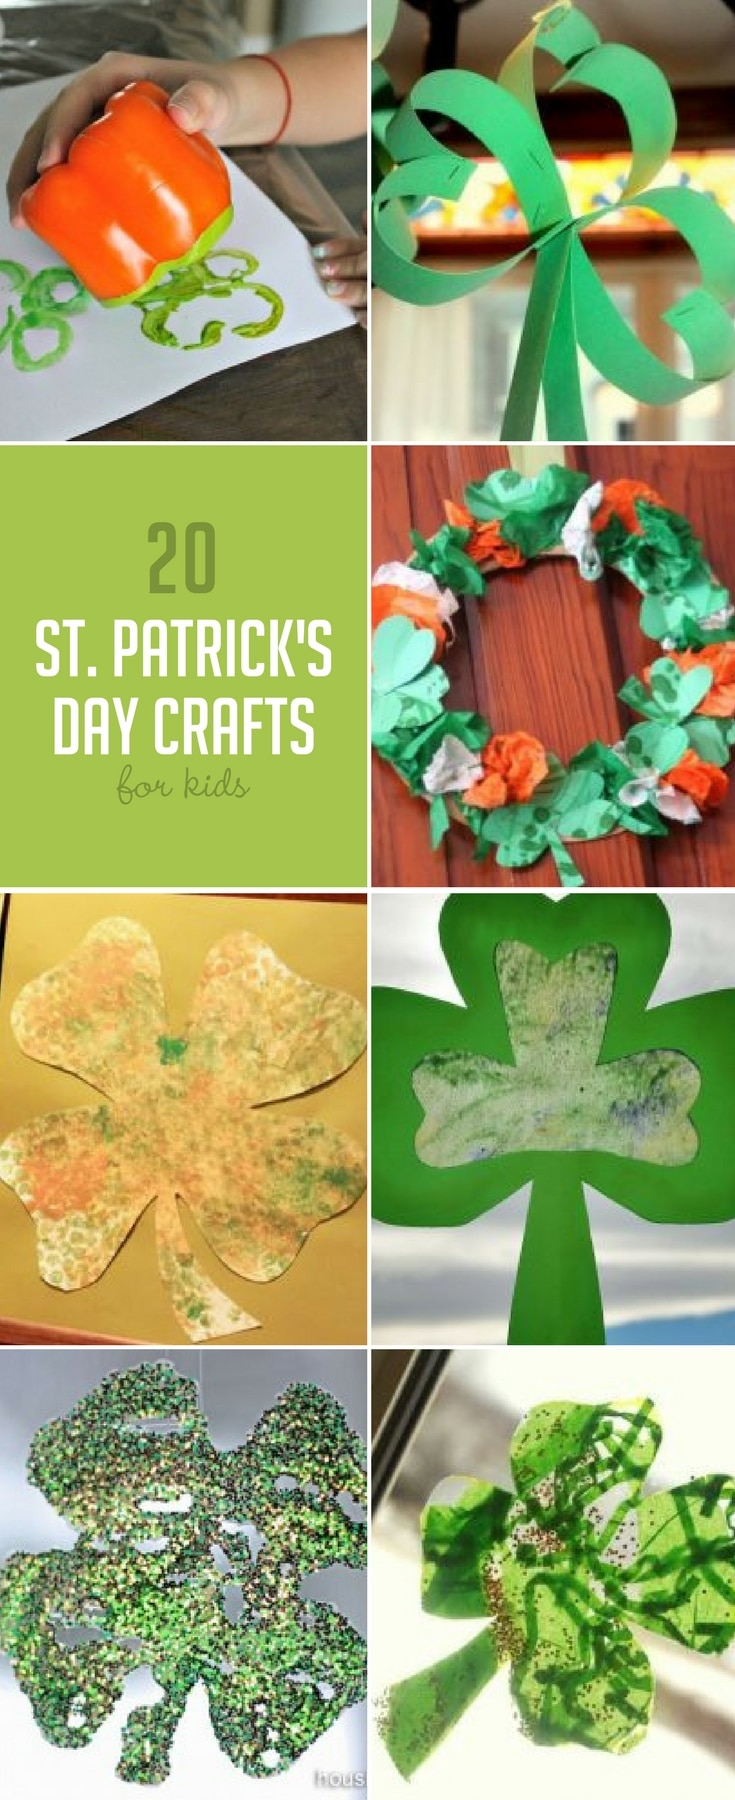 20 lucky shamrock crafts are the perfect way to celebrate St. Patrick's Day!